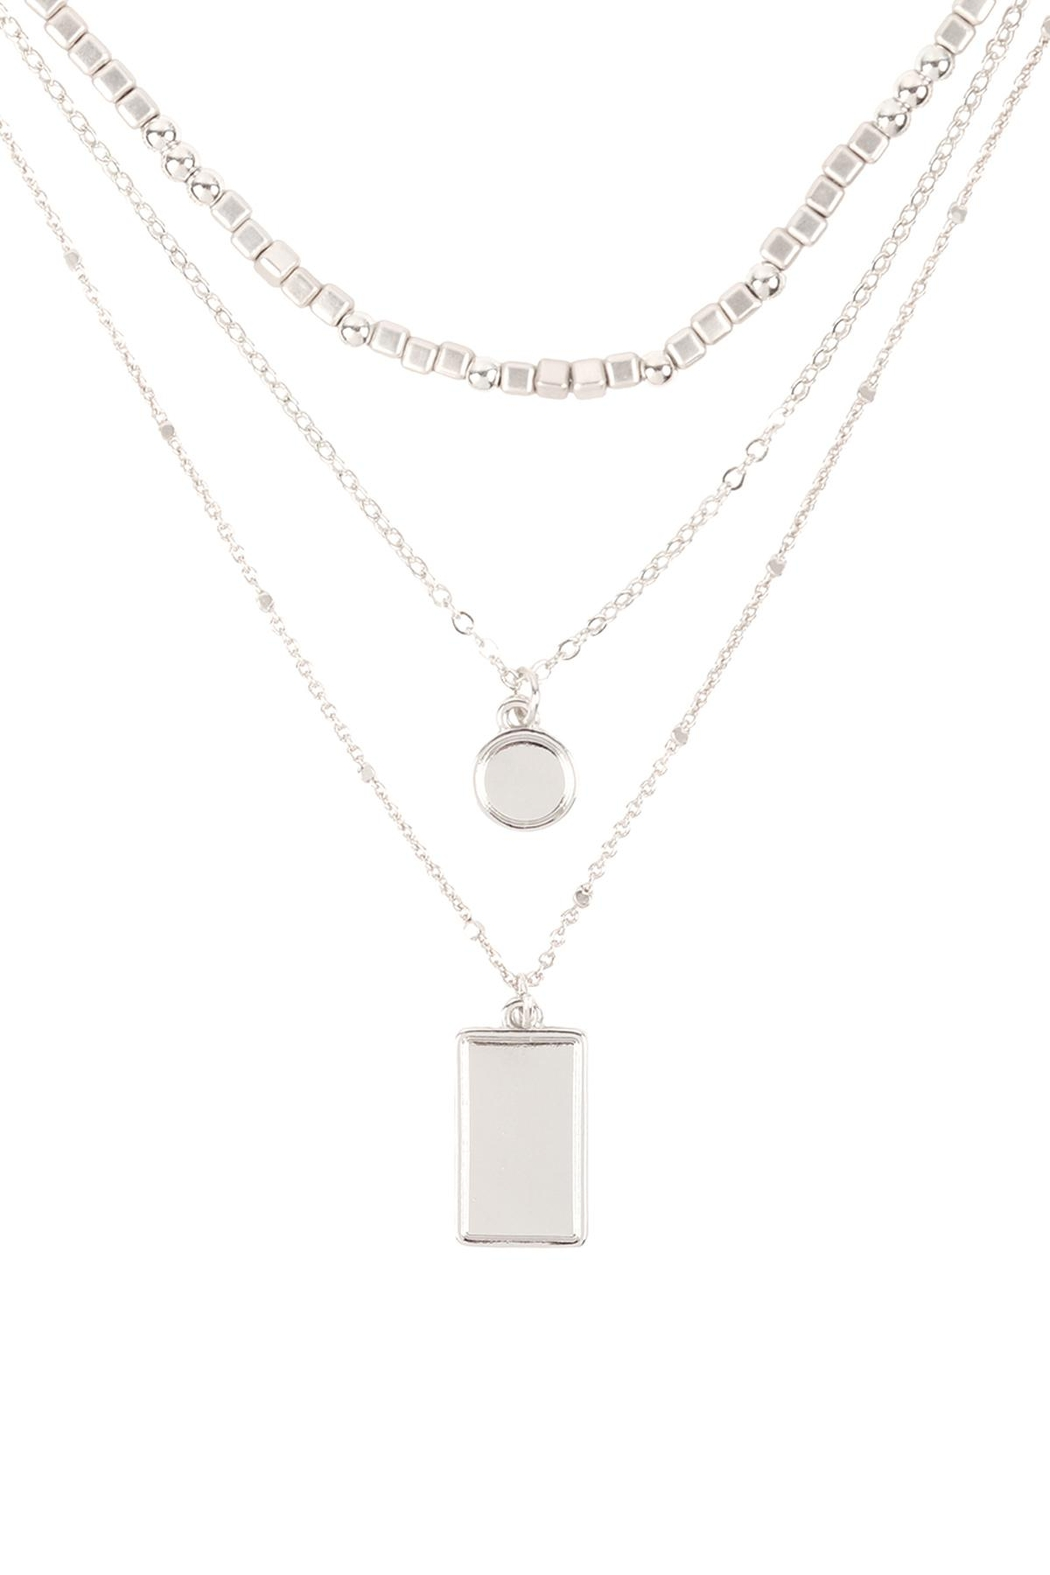 Riah Fashion Square-Round-Pendant-Layered-Mix-Chain-Necklace - Front Cropped Image